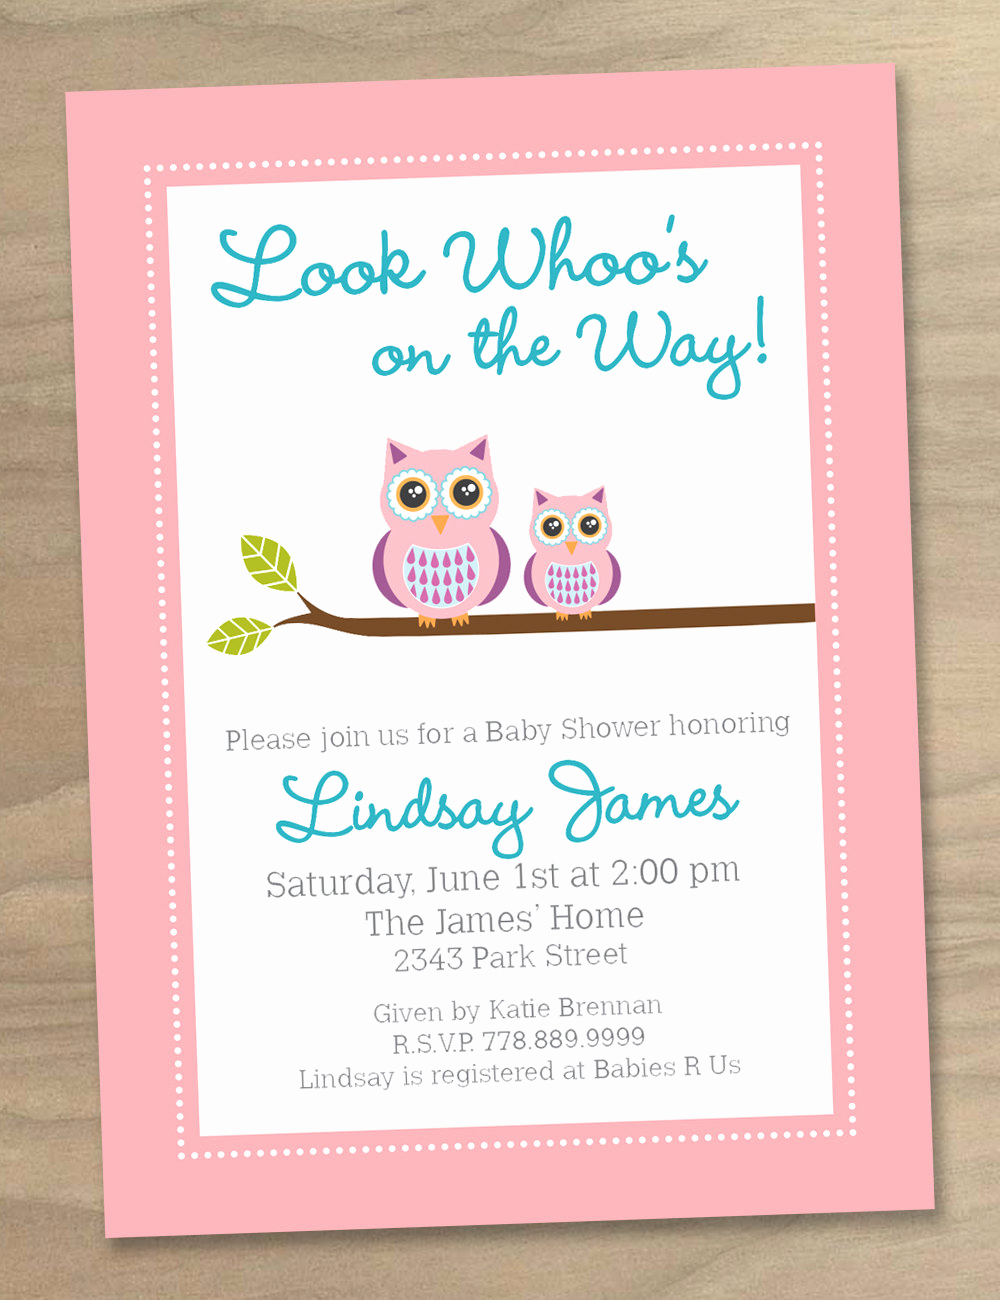 Baby Shower Invitation for Girls Unique Baby Shower Invitation Pink Purple Blue Baby Girl Cute